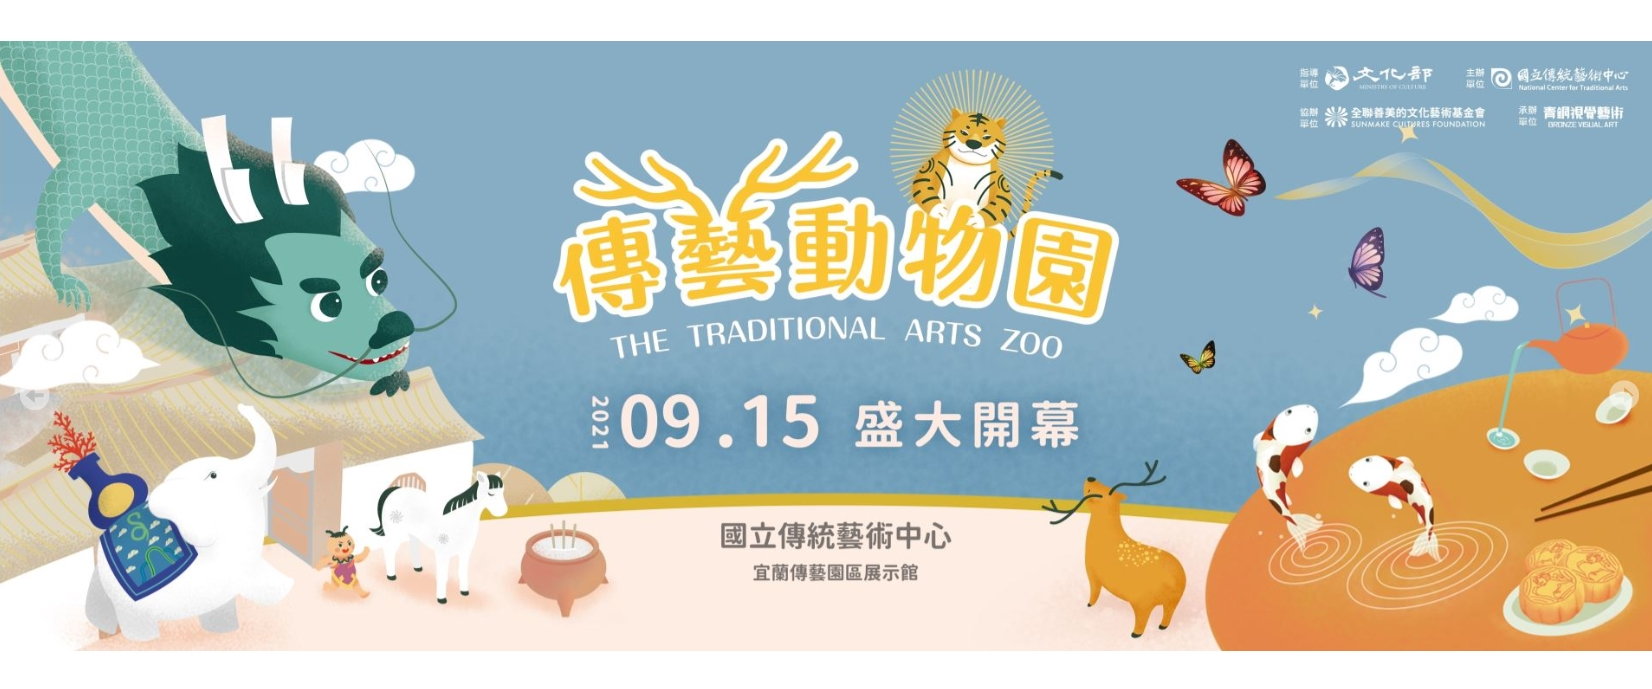 NCFTA launches 'The Traditional Arts Zoo' exhibitionopennewwindow